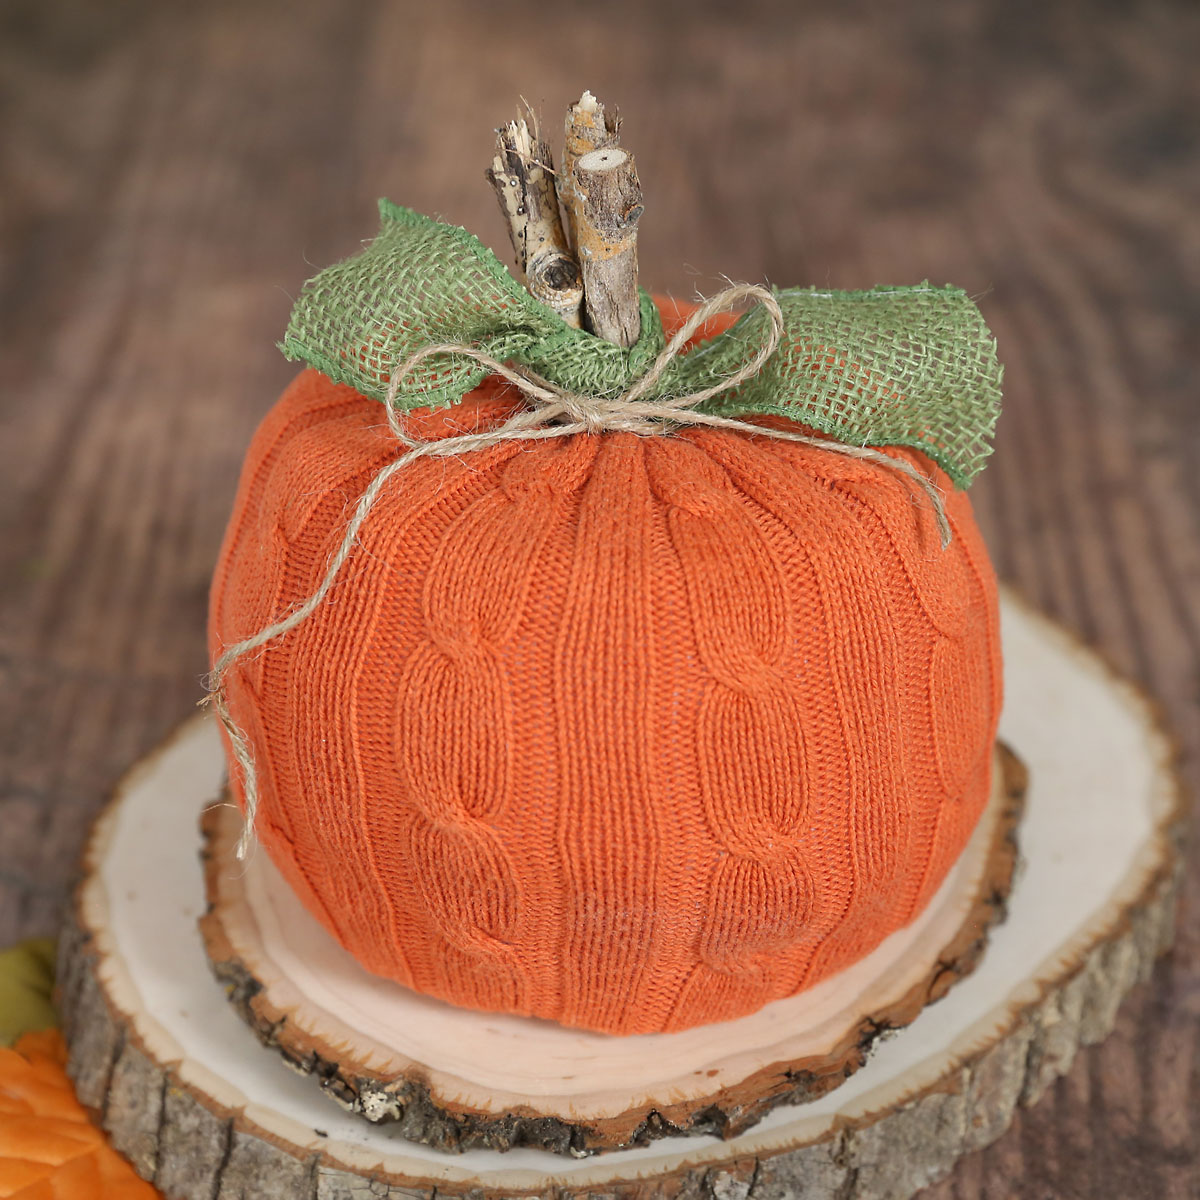 Pumpkin decoration made from a roll of toilet paper covered with orange sweater fabric